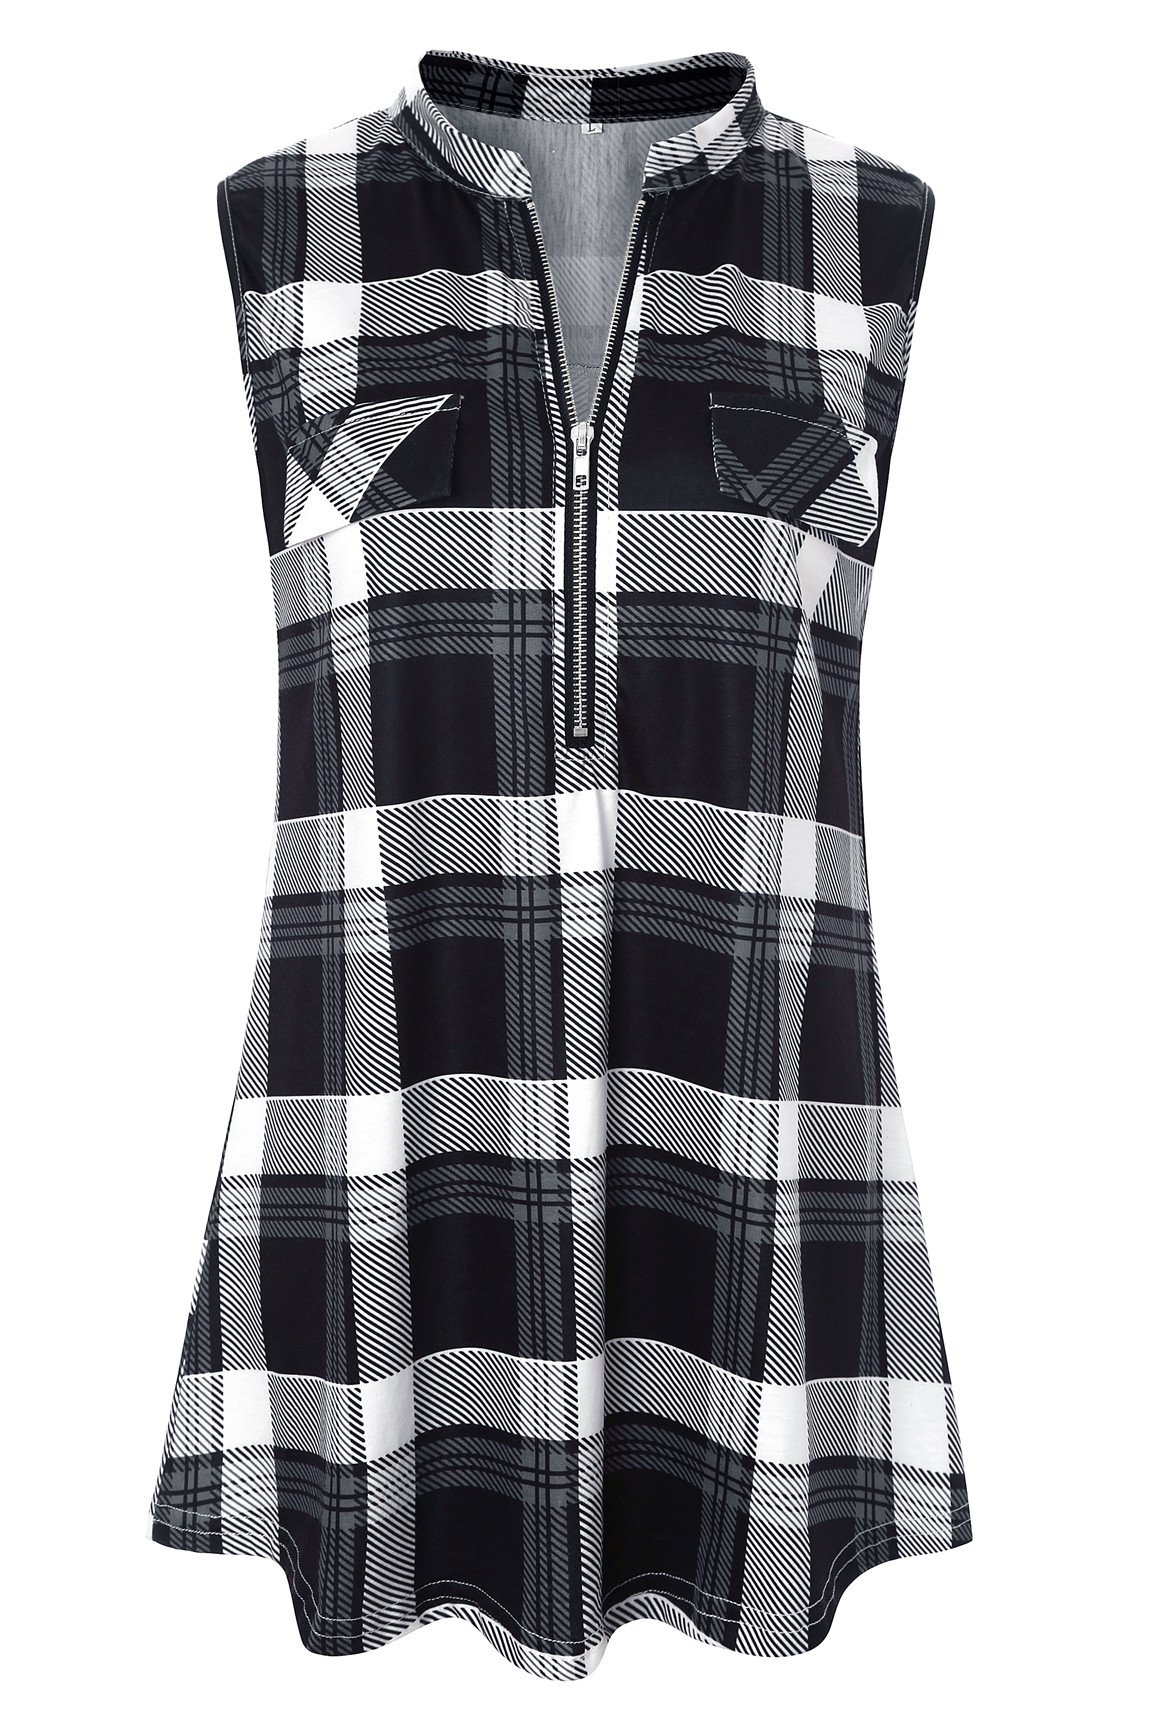 Luranee Womens Zip up Shirt, Ladies Loose Fit Tank Tops Flannel Blouses Notch V Neck Pleated Details Crisp Well Made Shopping Casual Wear Outfits Sleeveless Muffin Top Black Plaid XX Large